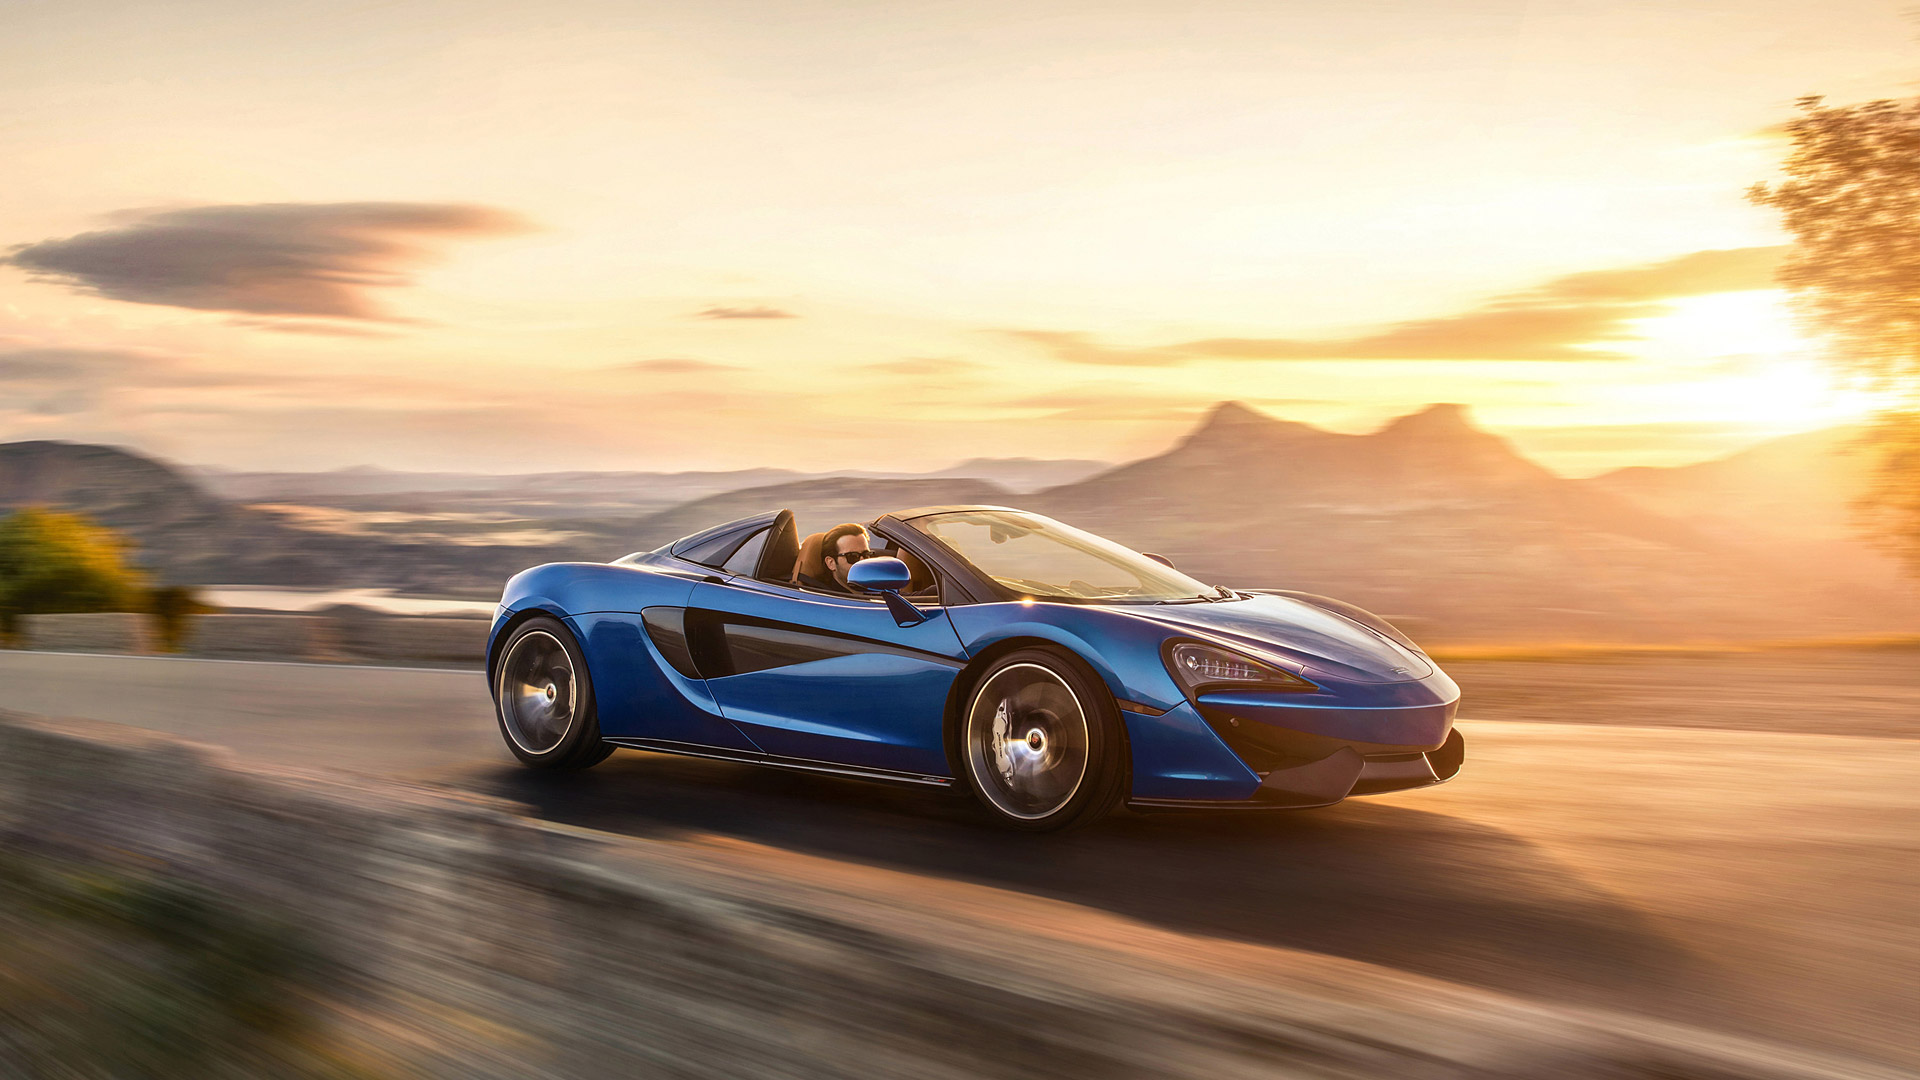 2018 McLaren 570S Spider Wallpapers HD Images   WSupercars 1920x1080